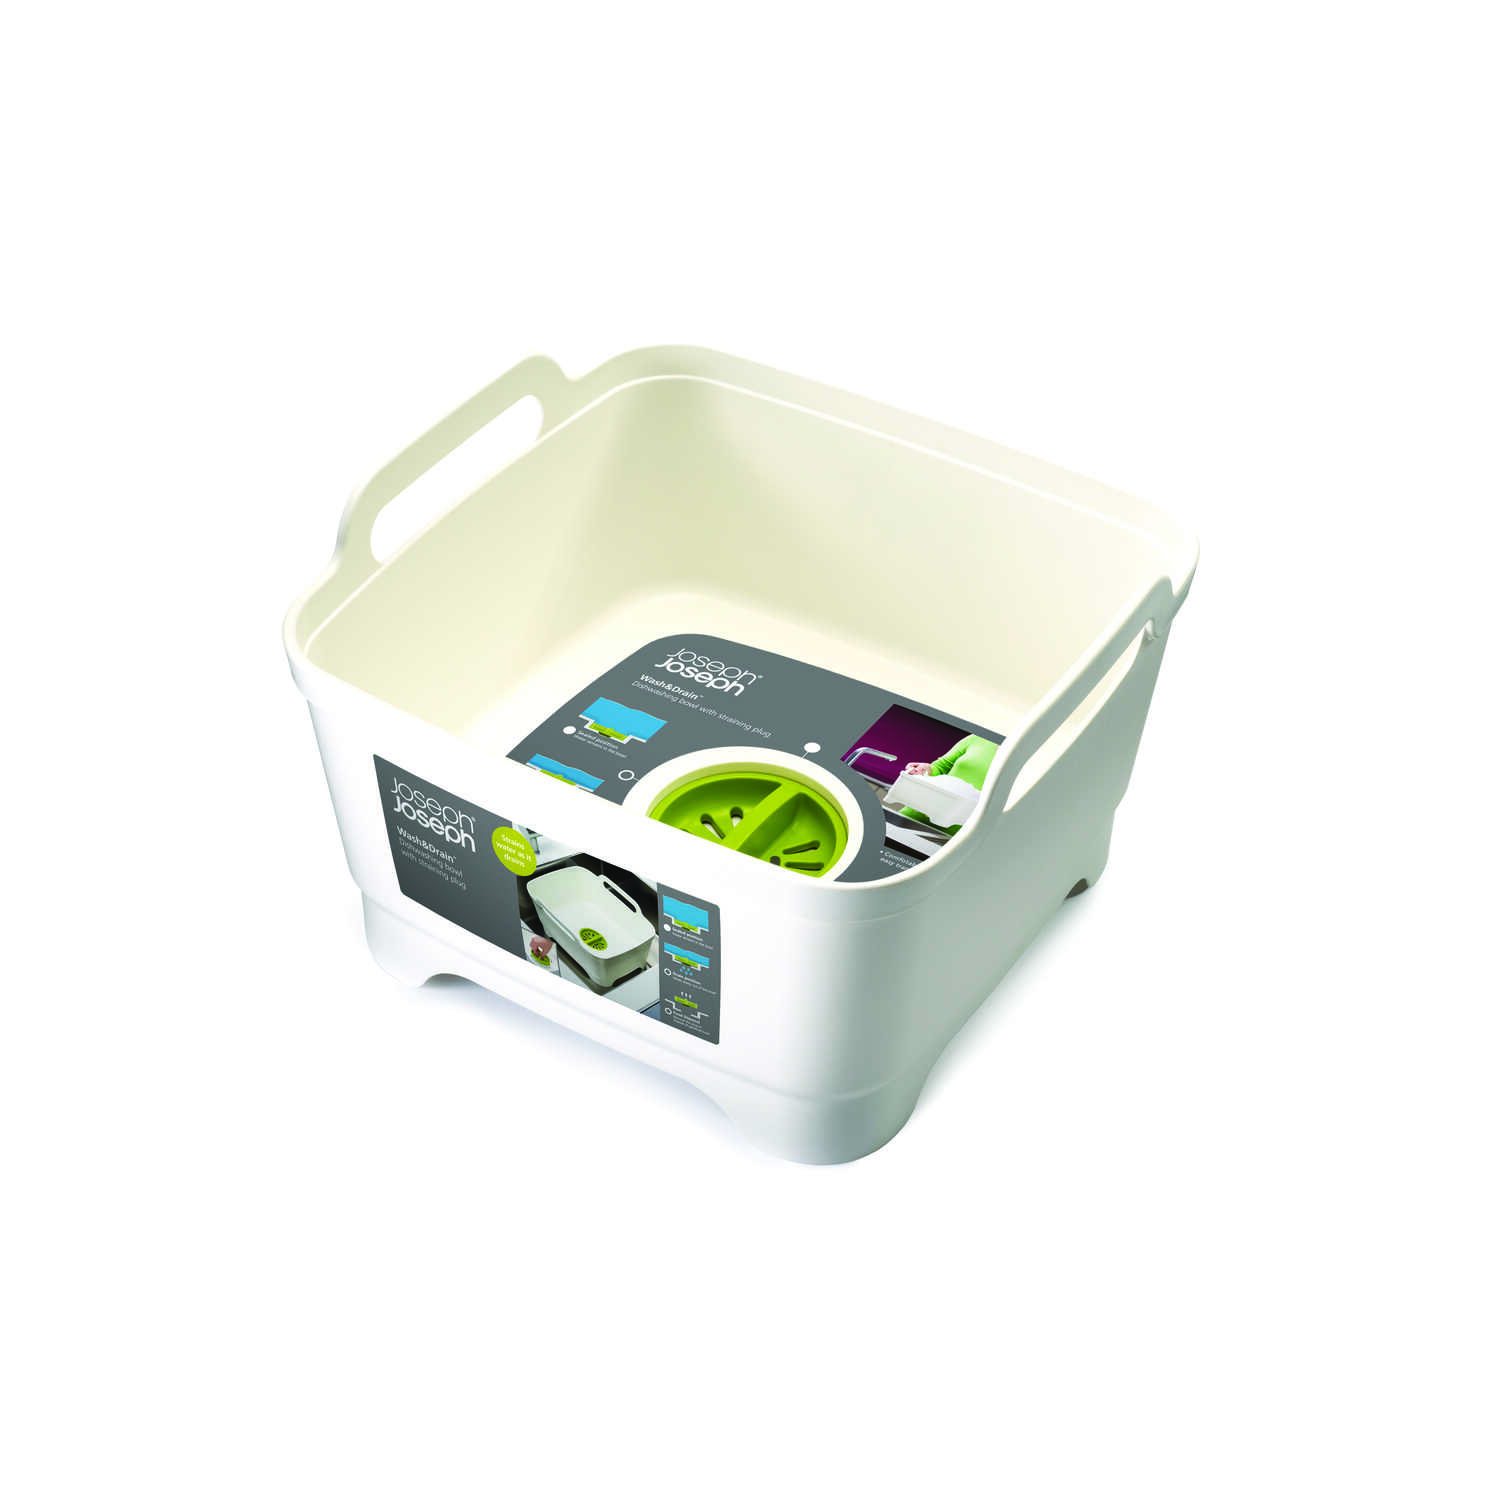 Joseph Joseph  Wash and Drain  12 in. W x 12 in. L Wash Tub W/Drain Plug